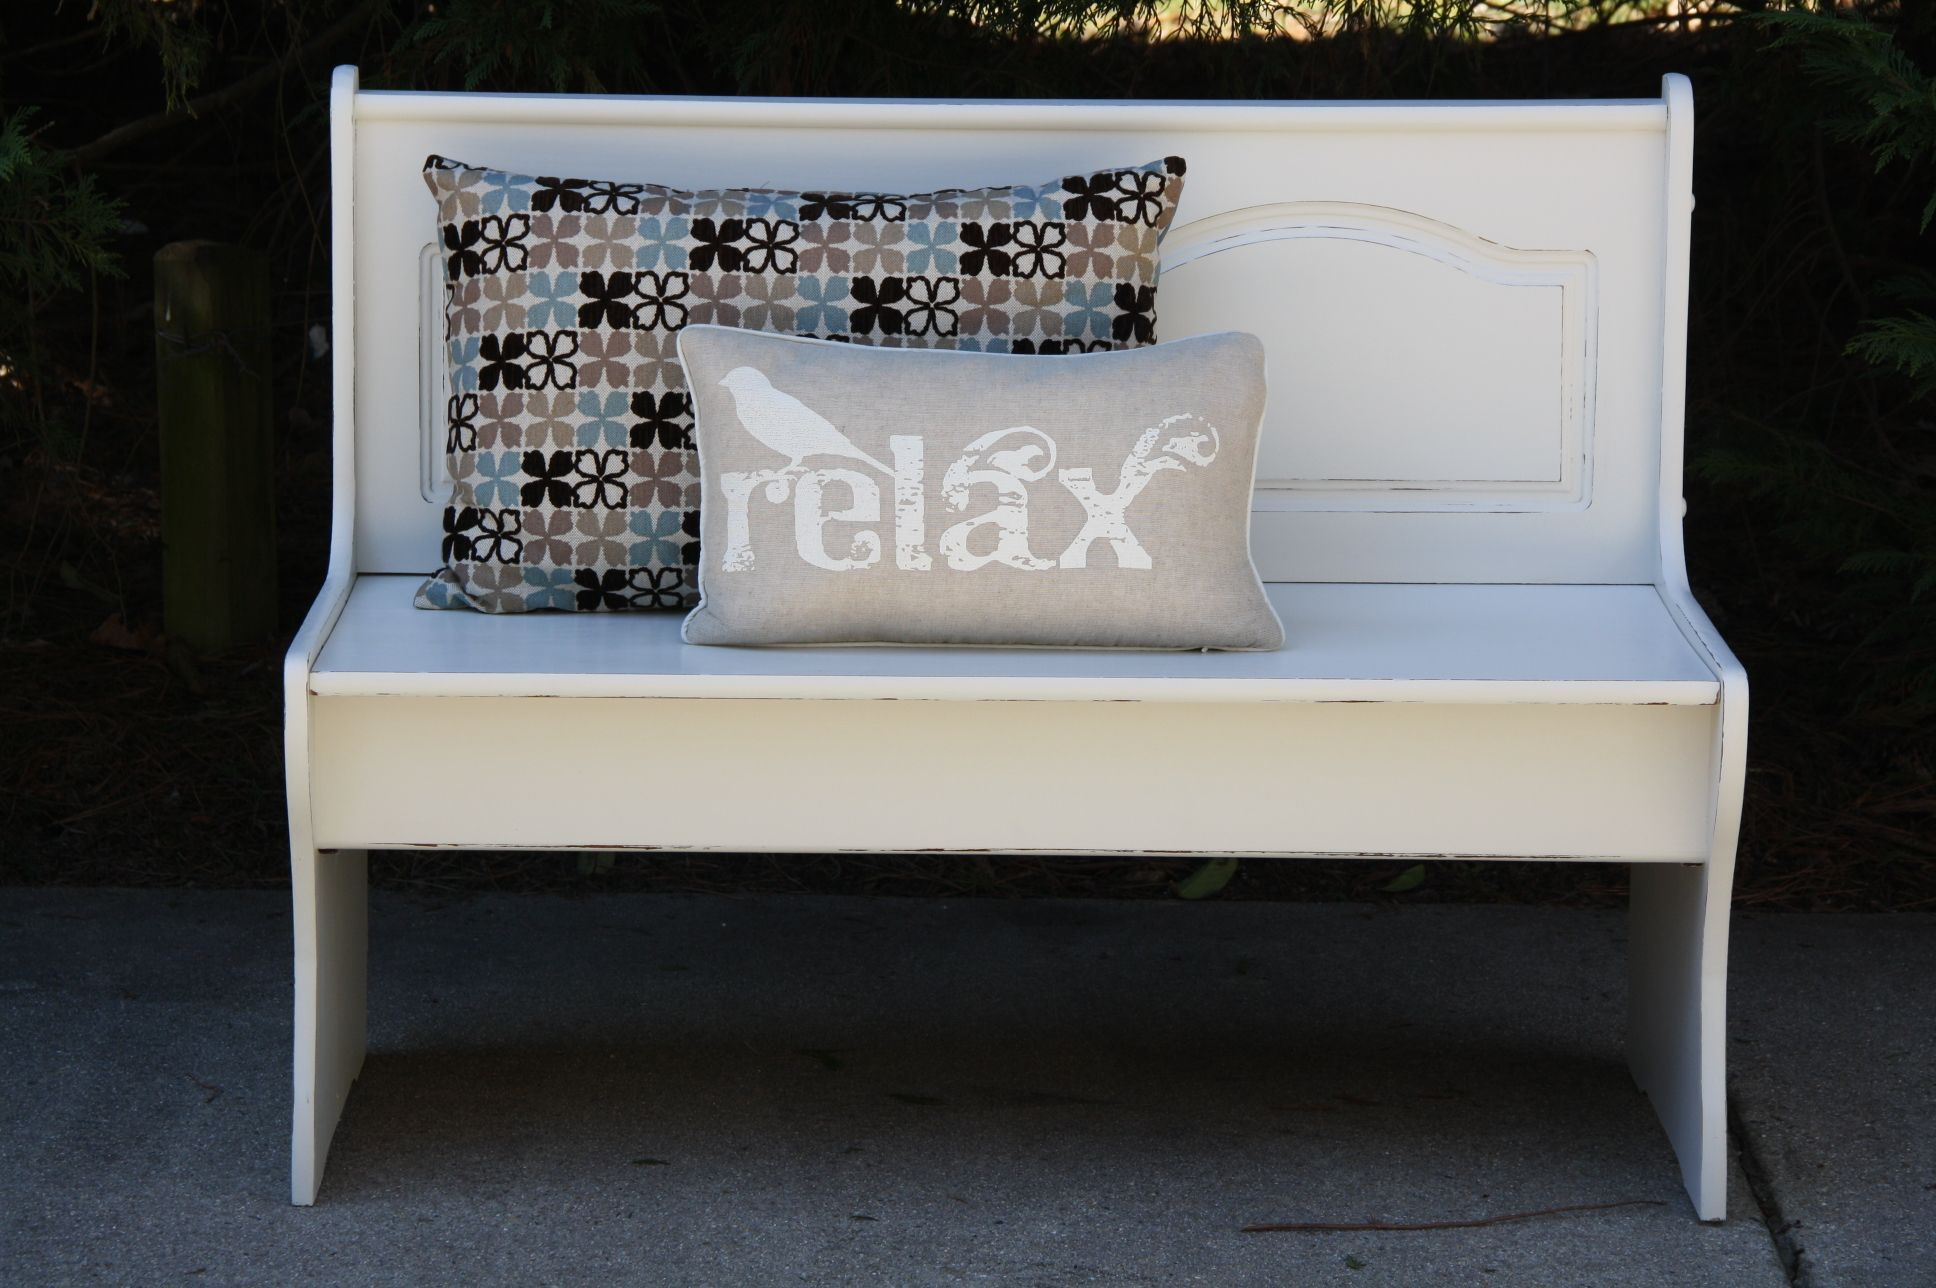 Small Church Pew Bench 28 Images The Backyard Boutique By Five To Nine Furnishings Small